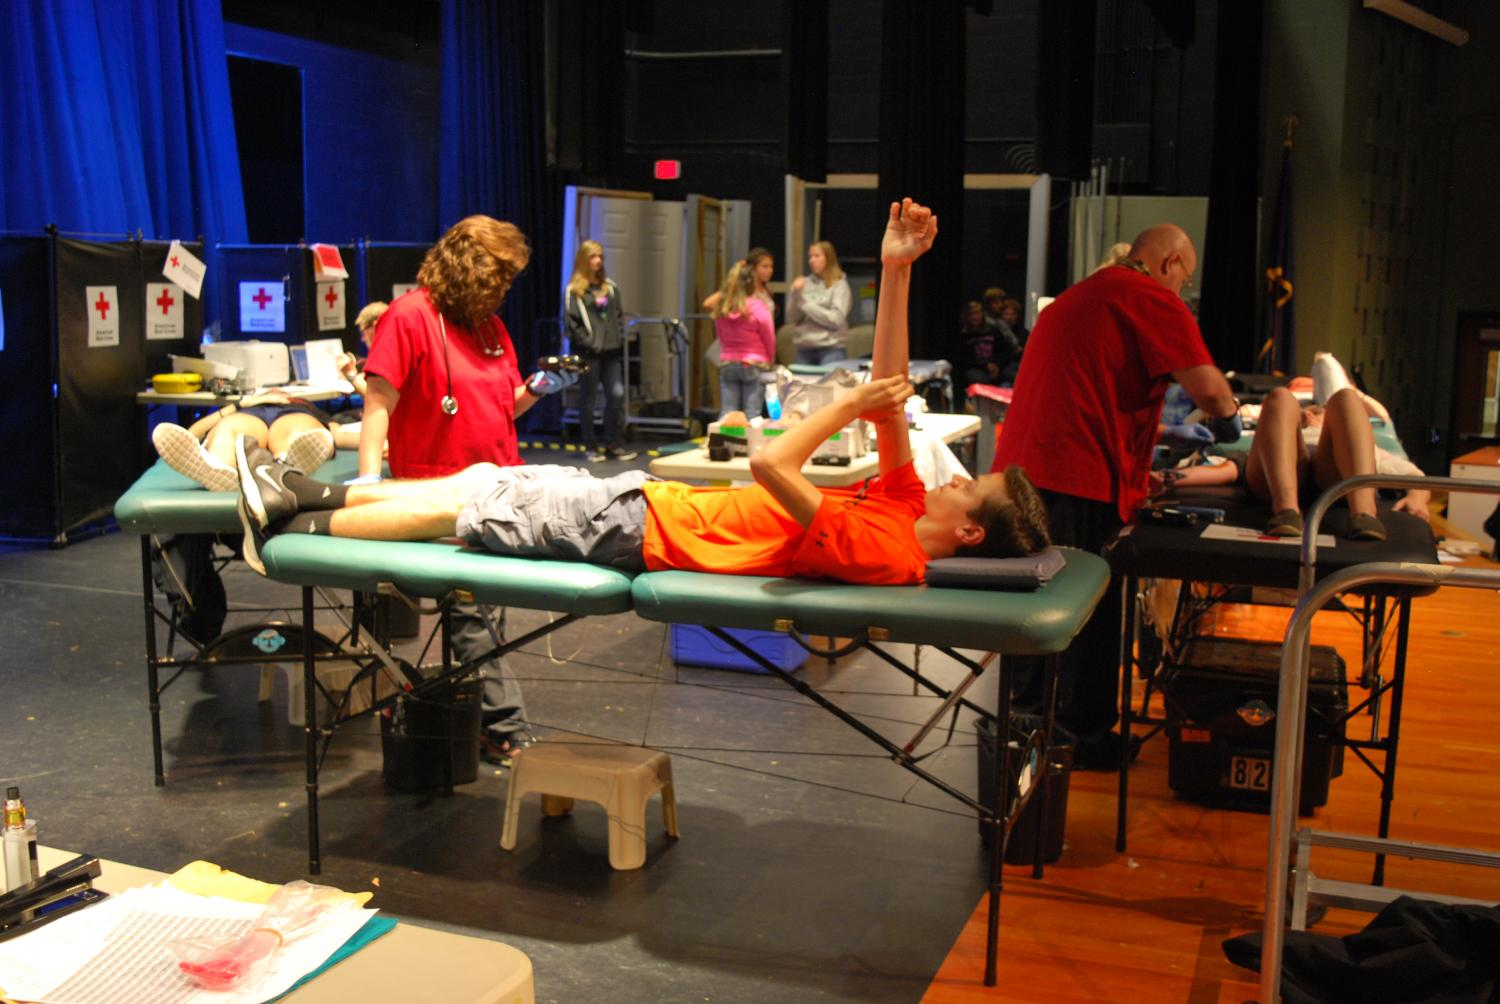 Michael Newman has his arm in the air awaiting the final steps of the blood donation process.